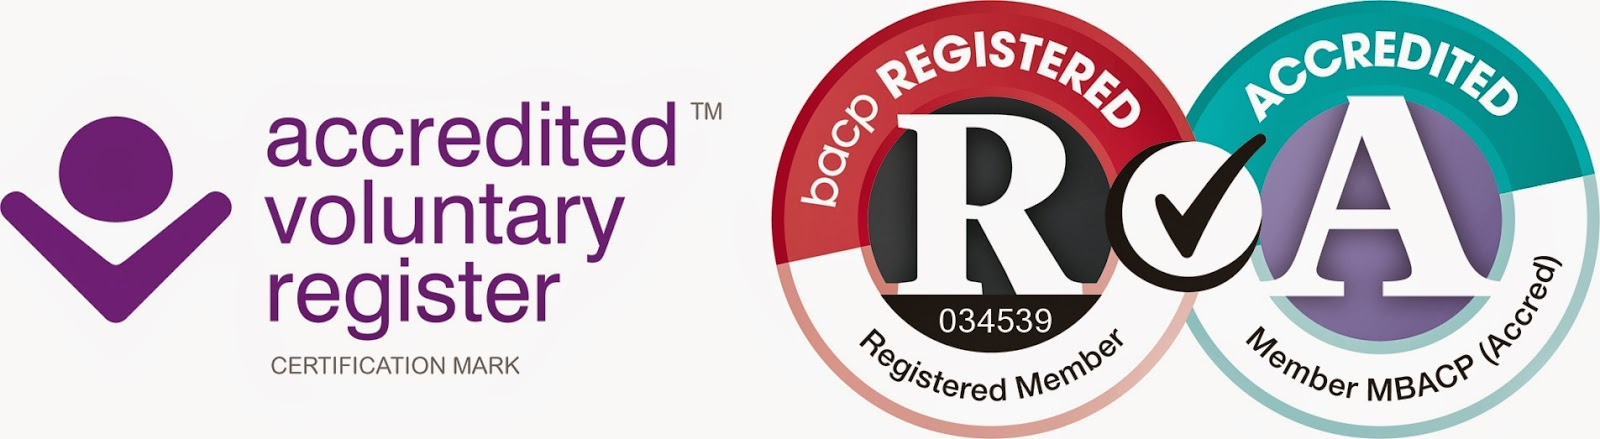 Registered MBACP Accredited Counsellor in Exeter